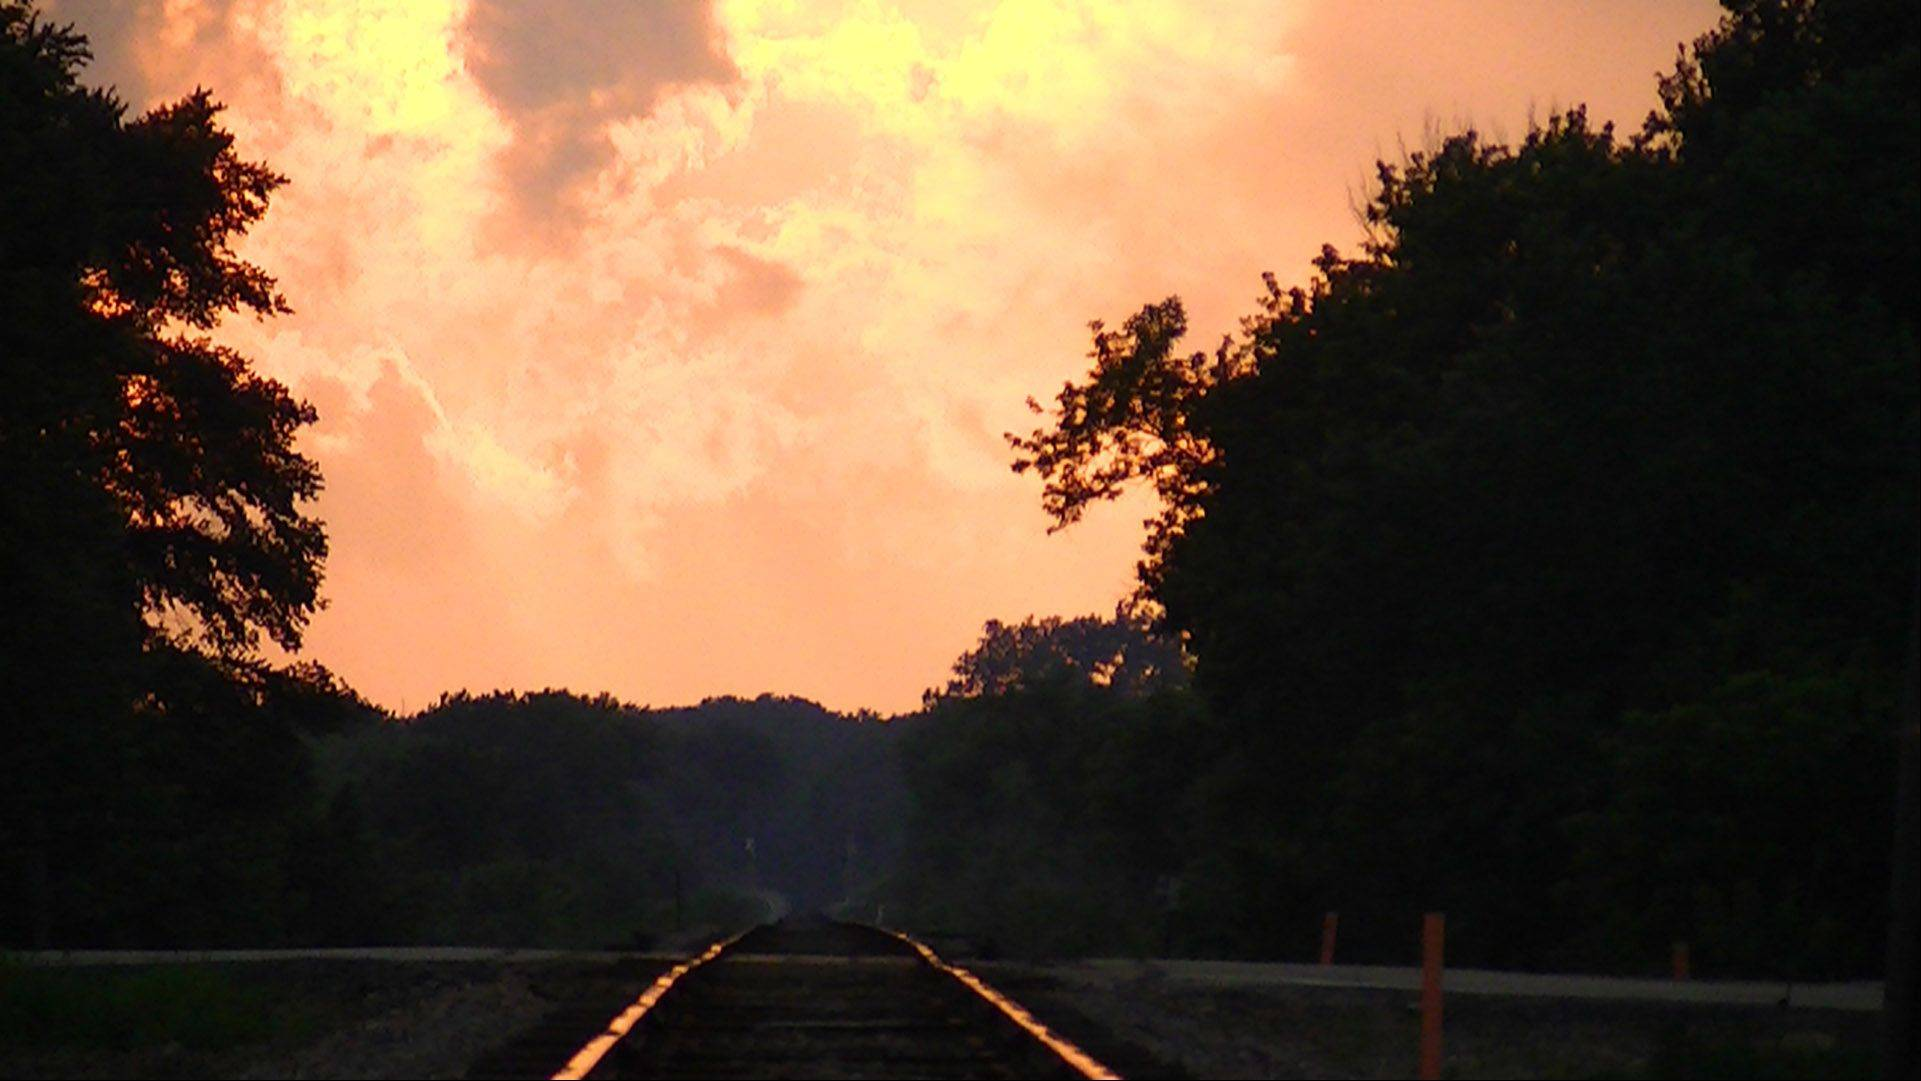 This photo was taken in Plato Center of the CN railroad tracks at sunset, looking west at a resplendent sunrise.